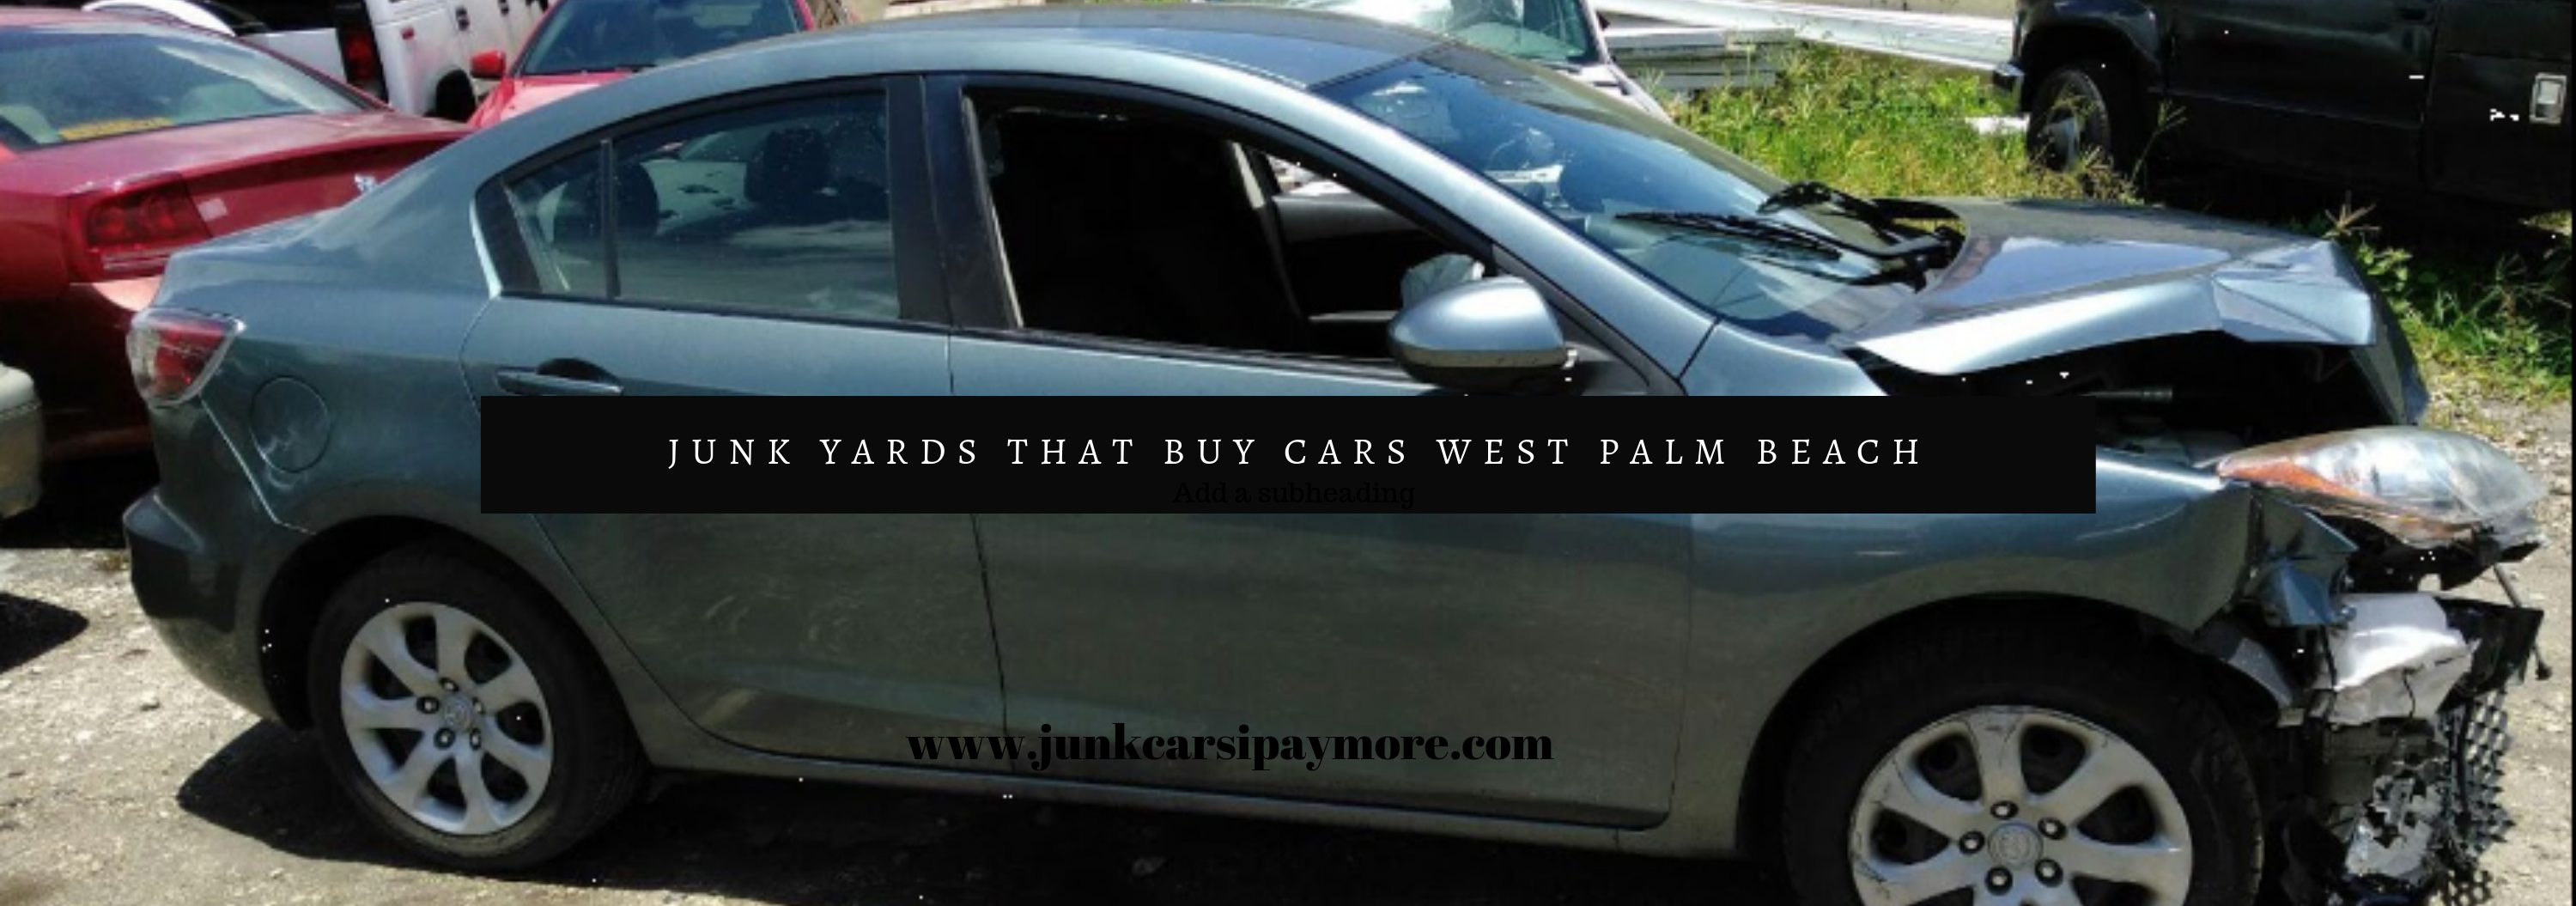 Junk Yards That Buy Cars West Palm Beach West Palm Beach West Palm Palm Beach